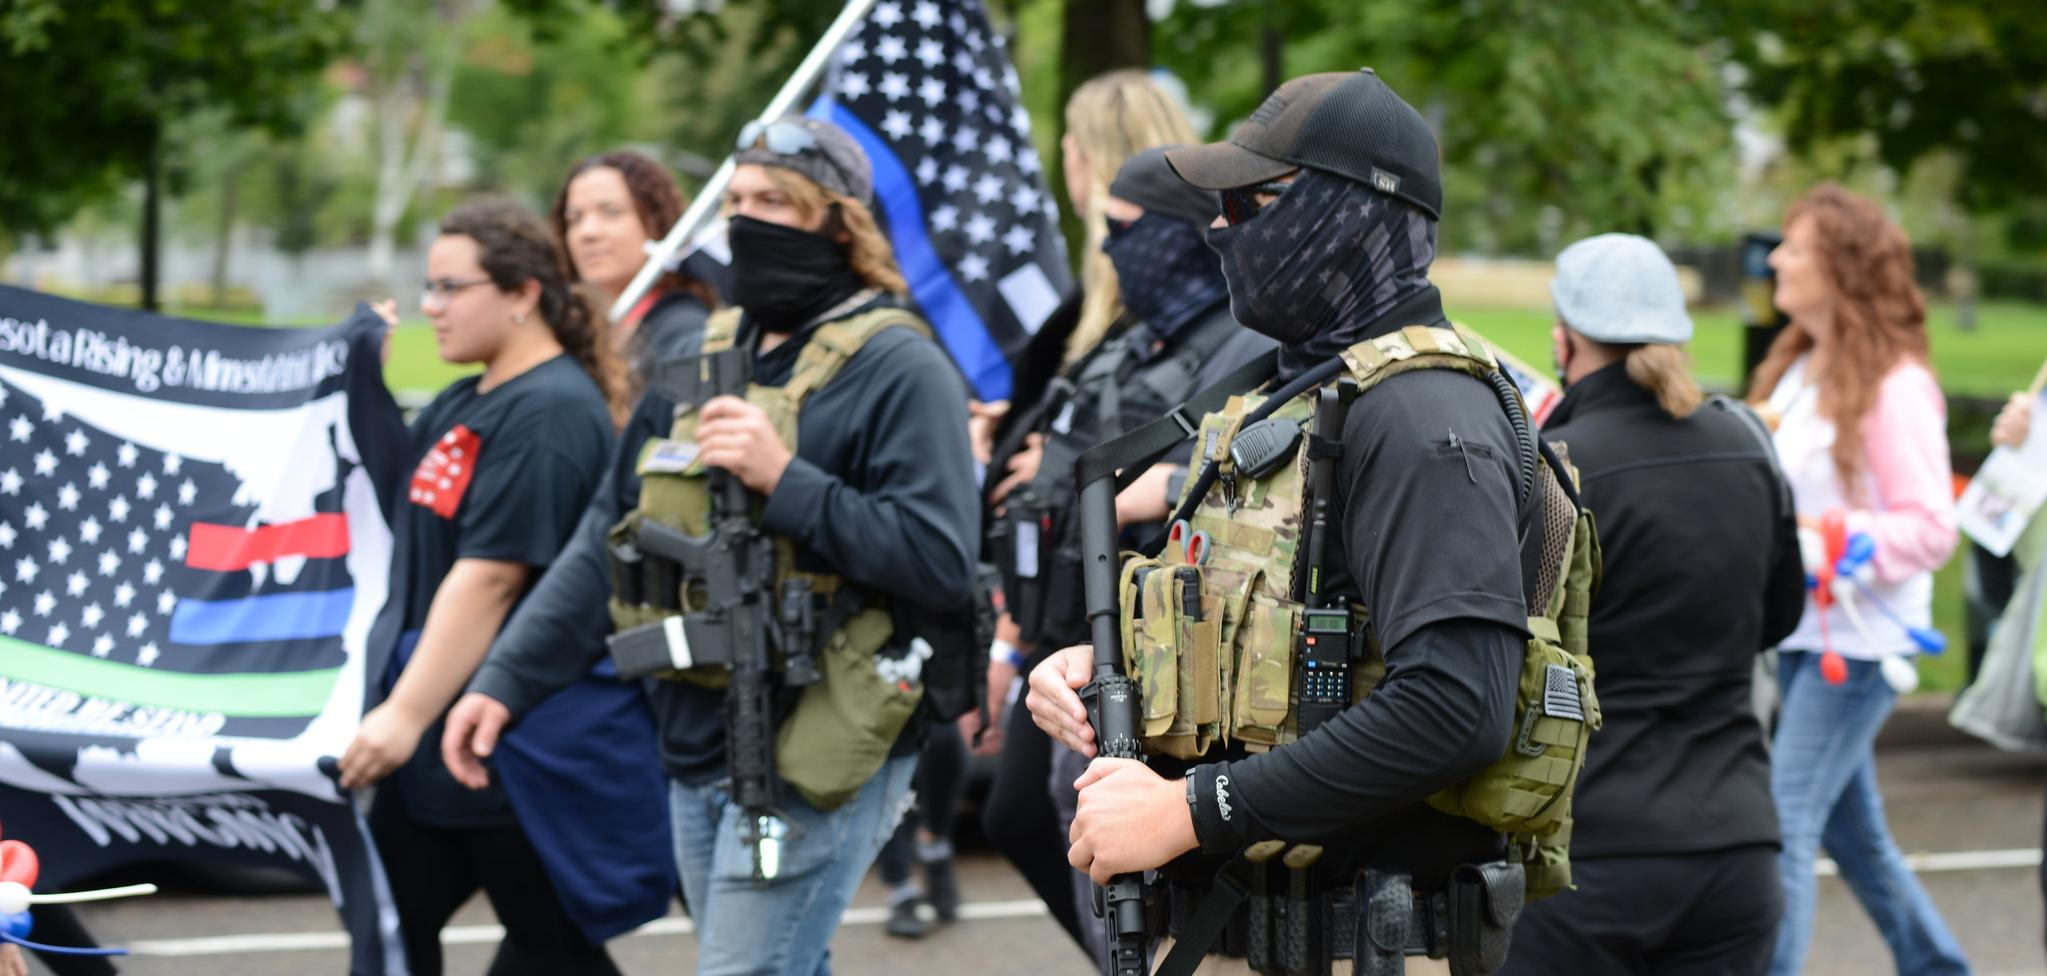 Armed militia members march next to a WWG1WGA flag, a common identifier of QAnon believers, at the United We Stand & Patriots March for America, St. Paul, Minnesota, September 12, 2020 (Credit: Fibonacci Blue/Flickr).